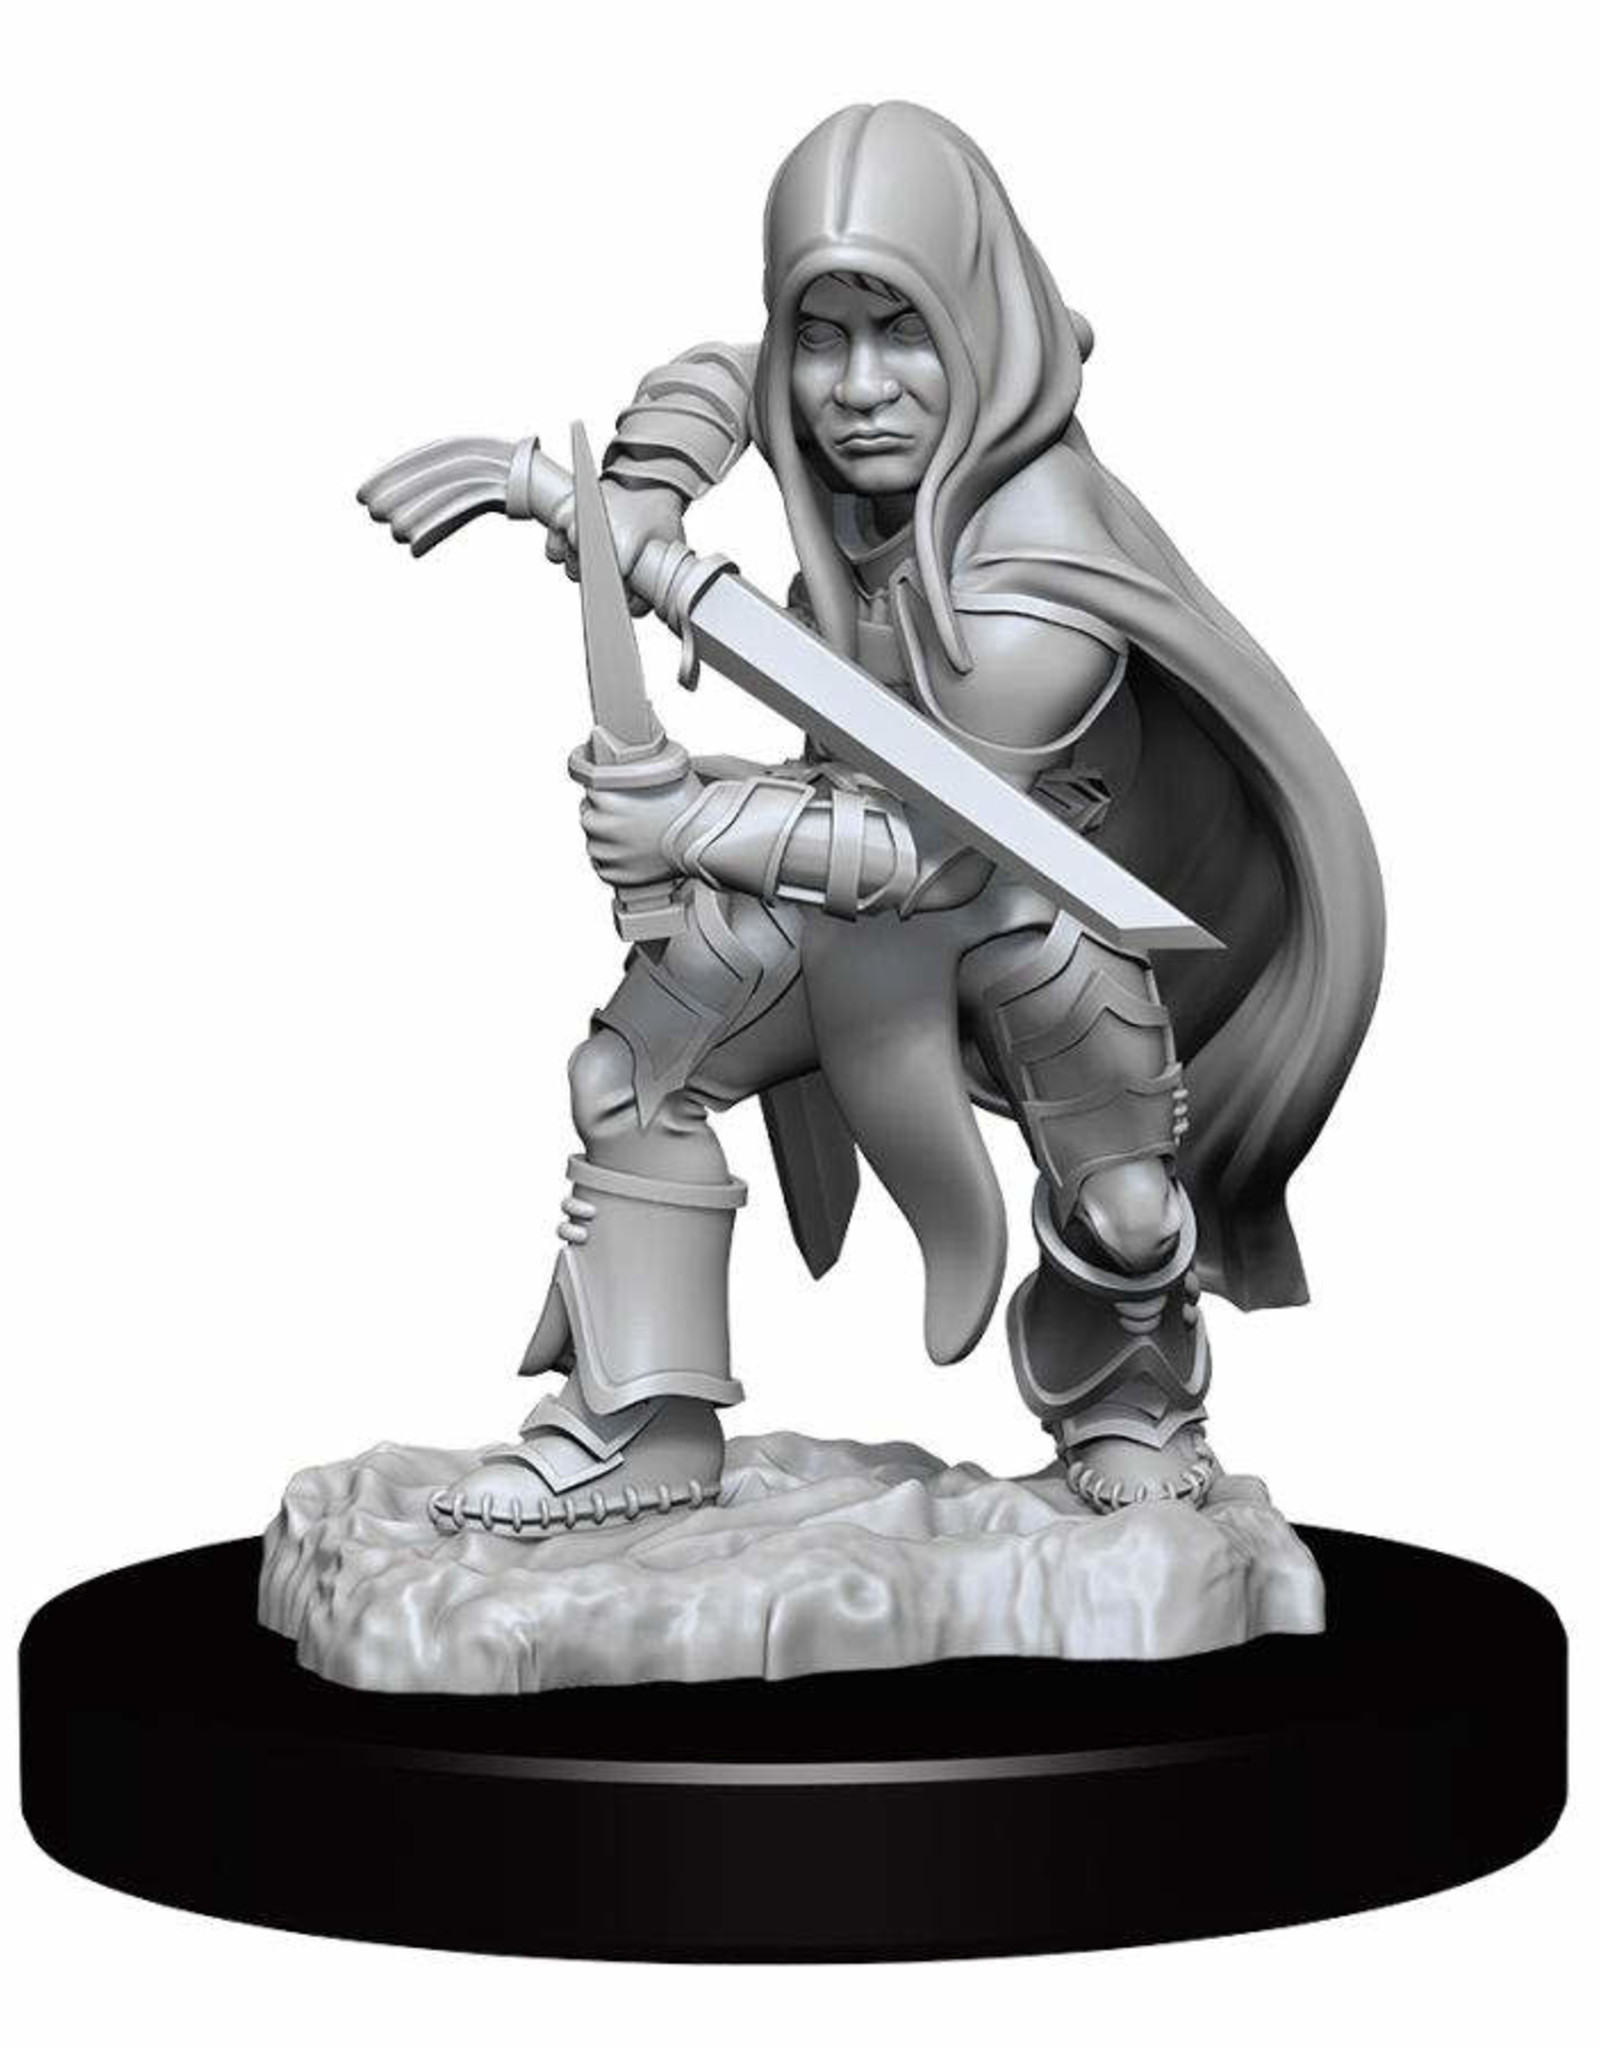 Wizkids Dungeons And Dragons Nolzur's Marvelous Miniatures: W13 Male Halfling Rogue